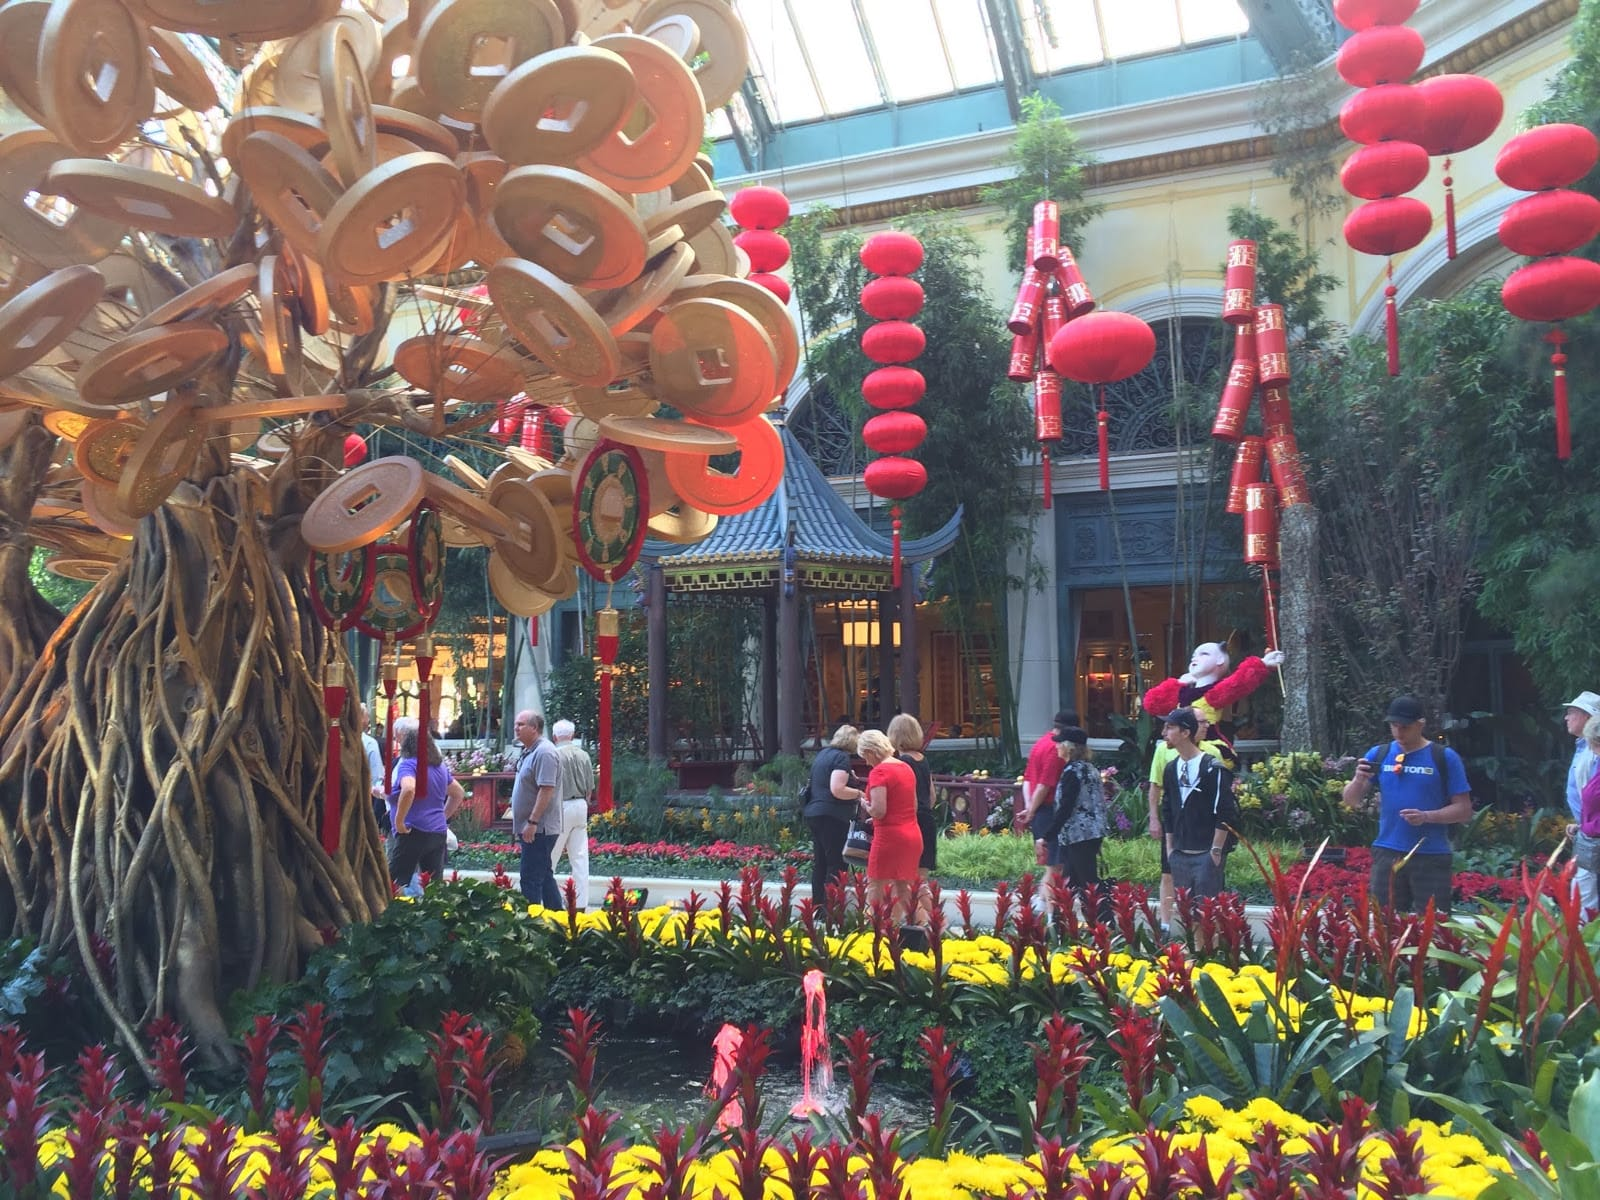 Las vegas welcomes the year of the dog with lunar new year celebrations participating resorts include the cromwell flamingo las vegas harrahs las vegas the linq hotel casino planet hollywood resort casino izmirmasajfo